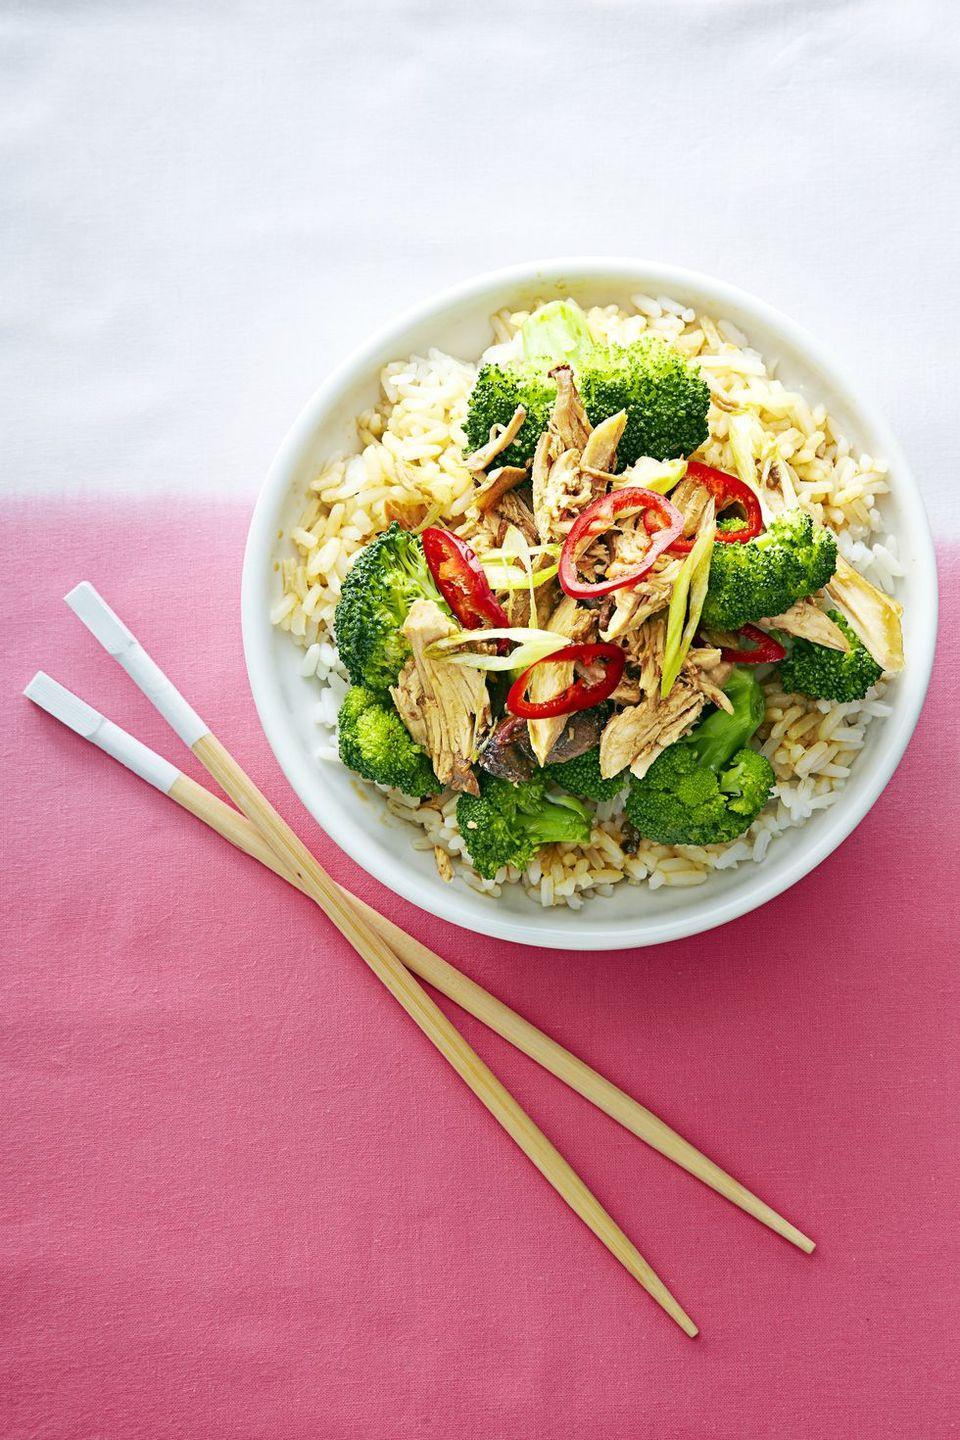 """<p>This is a healthy take on a classic Chinese dish. Over the course of five hours, the chicken marinates and stews in a sesame-soy sauce while absorbing the spices of sliced ginger and garlic. The broccoli and the rice do not cook in the same pot; however, so toward the end of the chicken's cook time, you're going to have to prepare that to complete the dish. But if you steam the veggies and pop the rice in your rice cooker, this shouldn't take much more effort.</p><p><em><a href=""""https://www.goodhousekeeping.com/food-recipes/a14890/slow-cooker-sesame-garlic-chicken-recipe-ghk1214/"""" rel=""""nofollow noopener"""" target=""""_blank"""" data-ylk=""""slk:Get the recipe from Good Housekeeping »"""" class=""""link rapid-noclick-resp"""">Get the recipe from Good Housekeeping »</a></em></p>"""